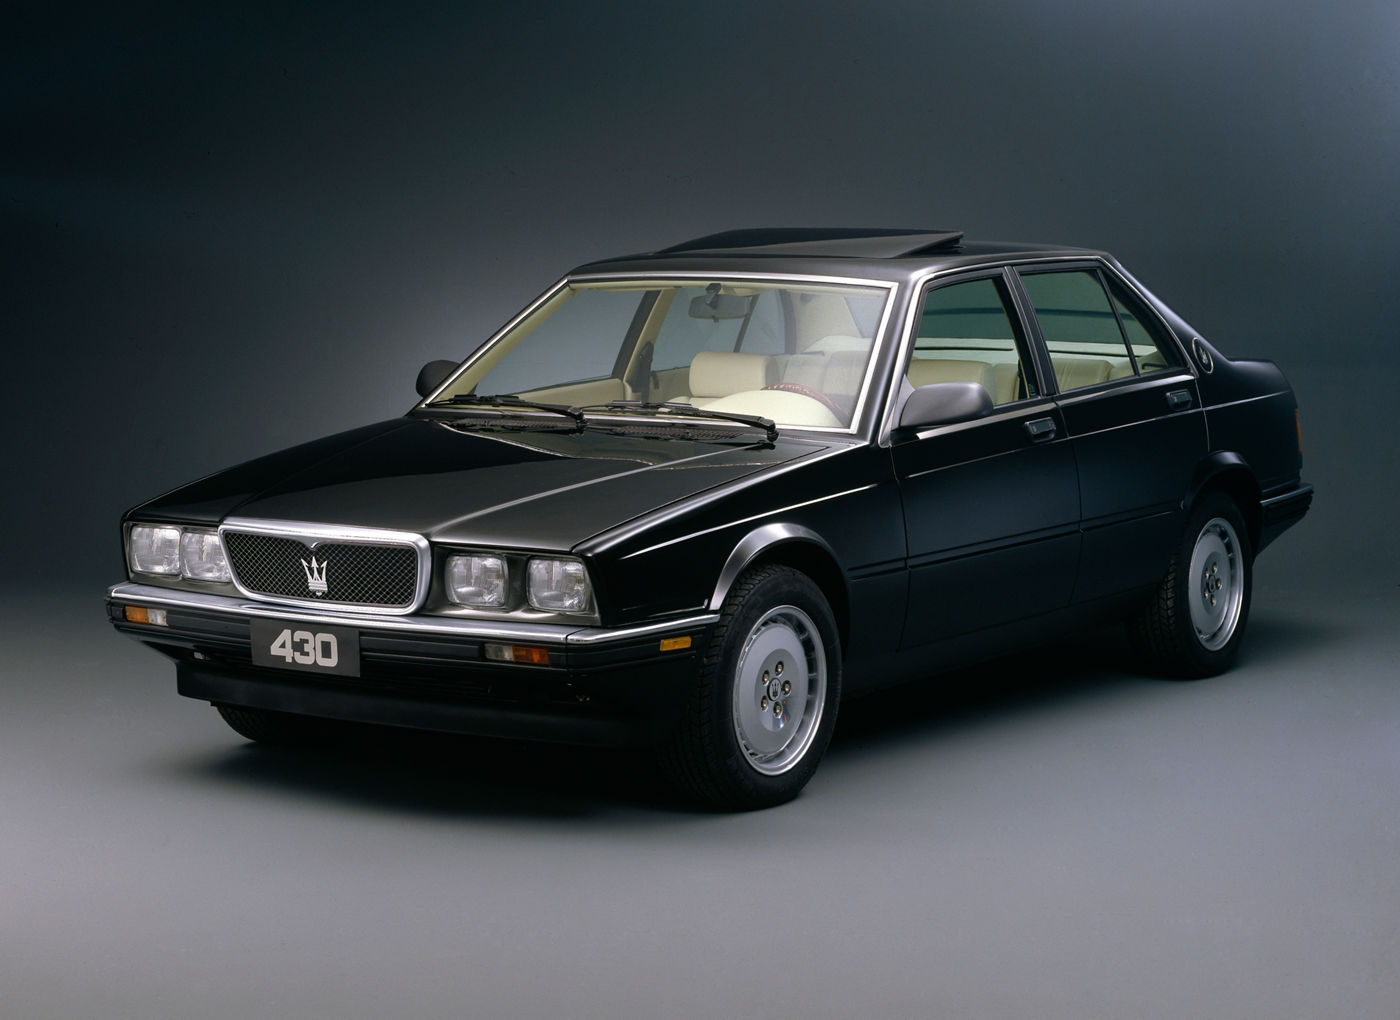 1987 Maserati 430 - exterior view of the classic car model in black